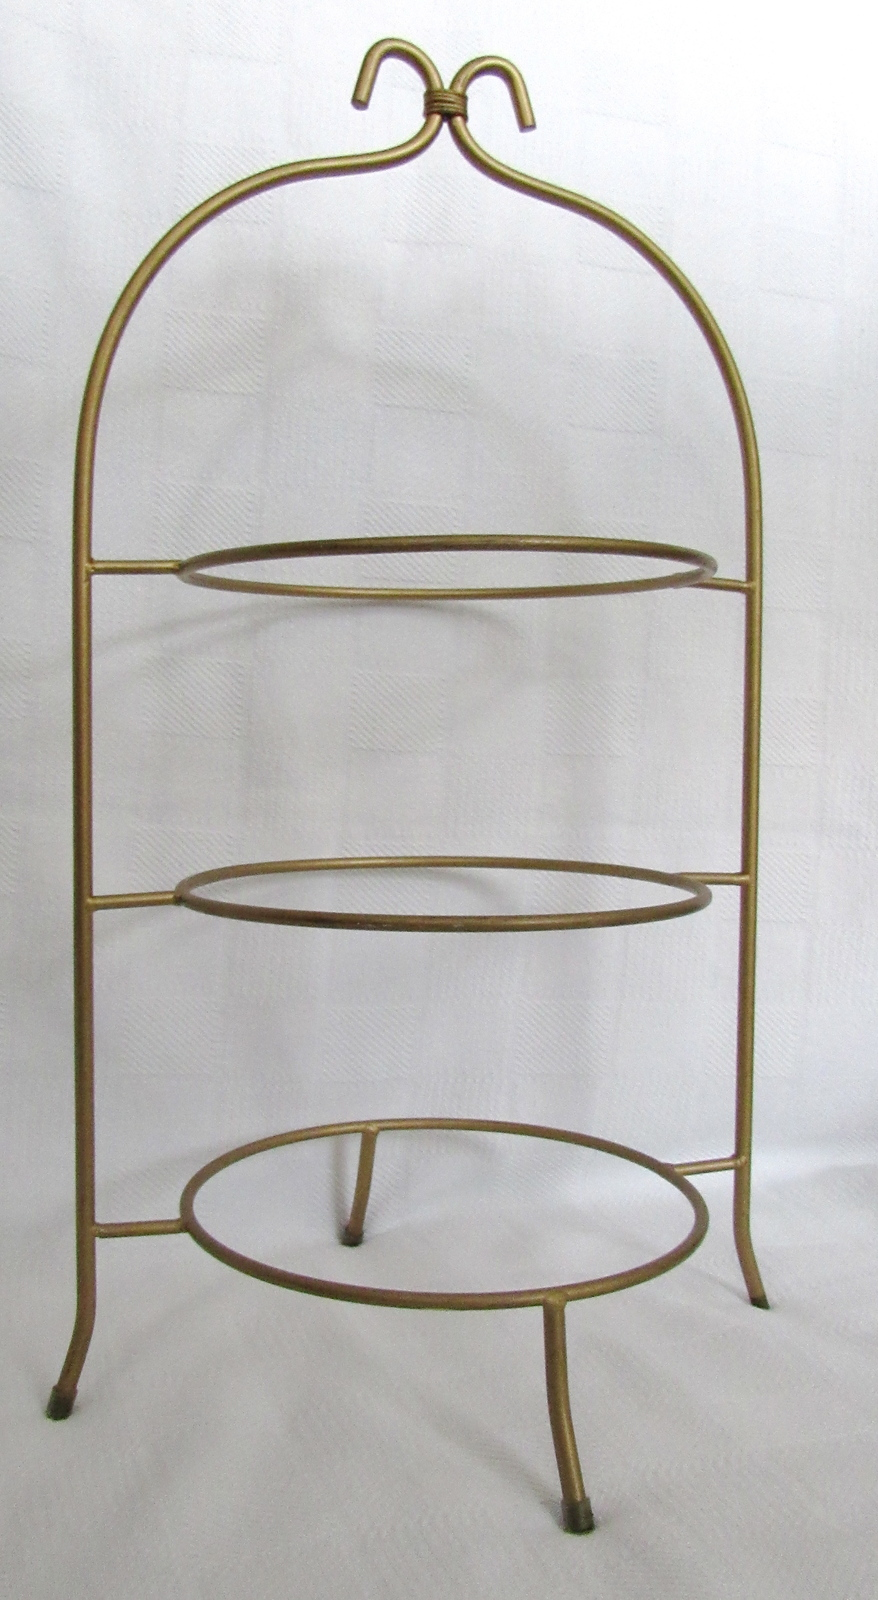 Gold Finish Three Tier Metal Plate Stand